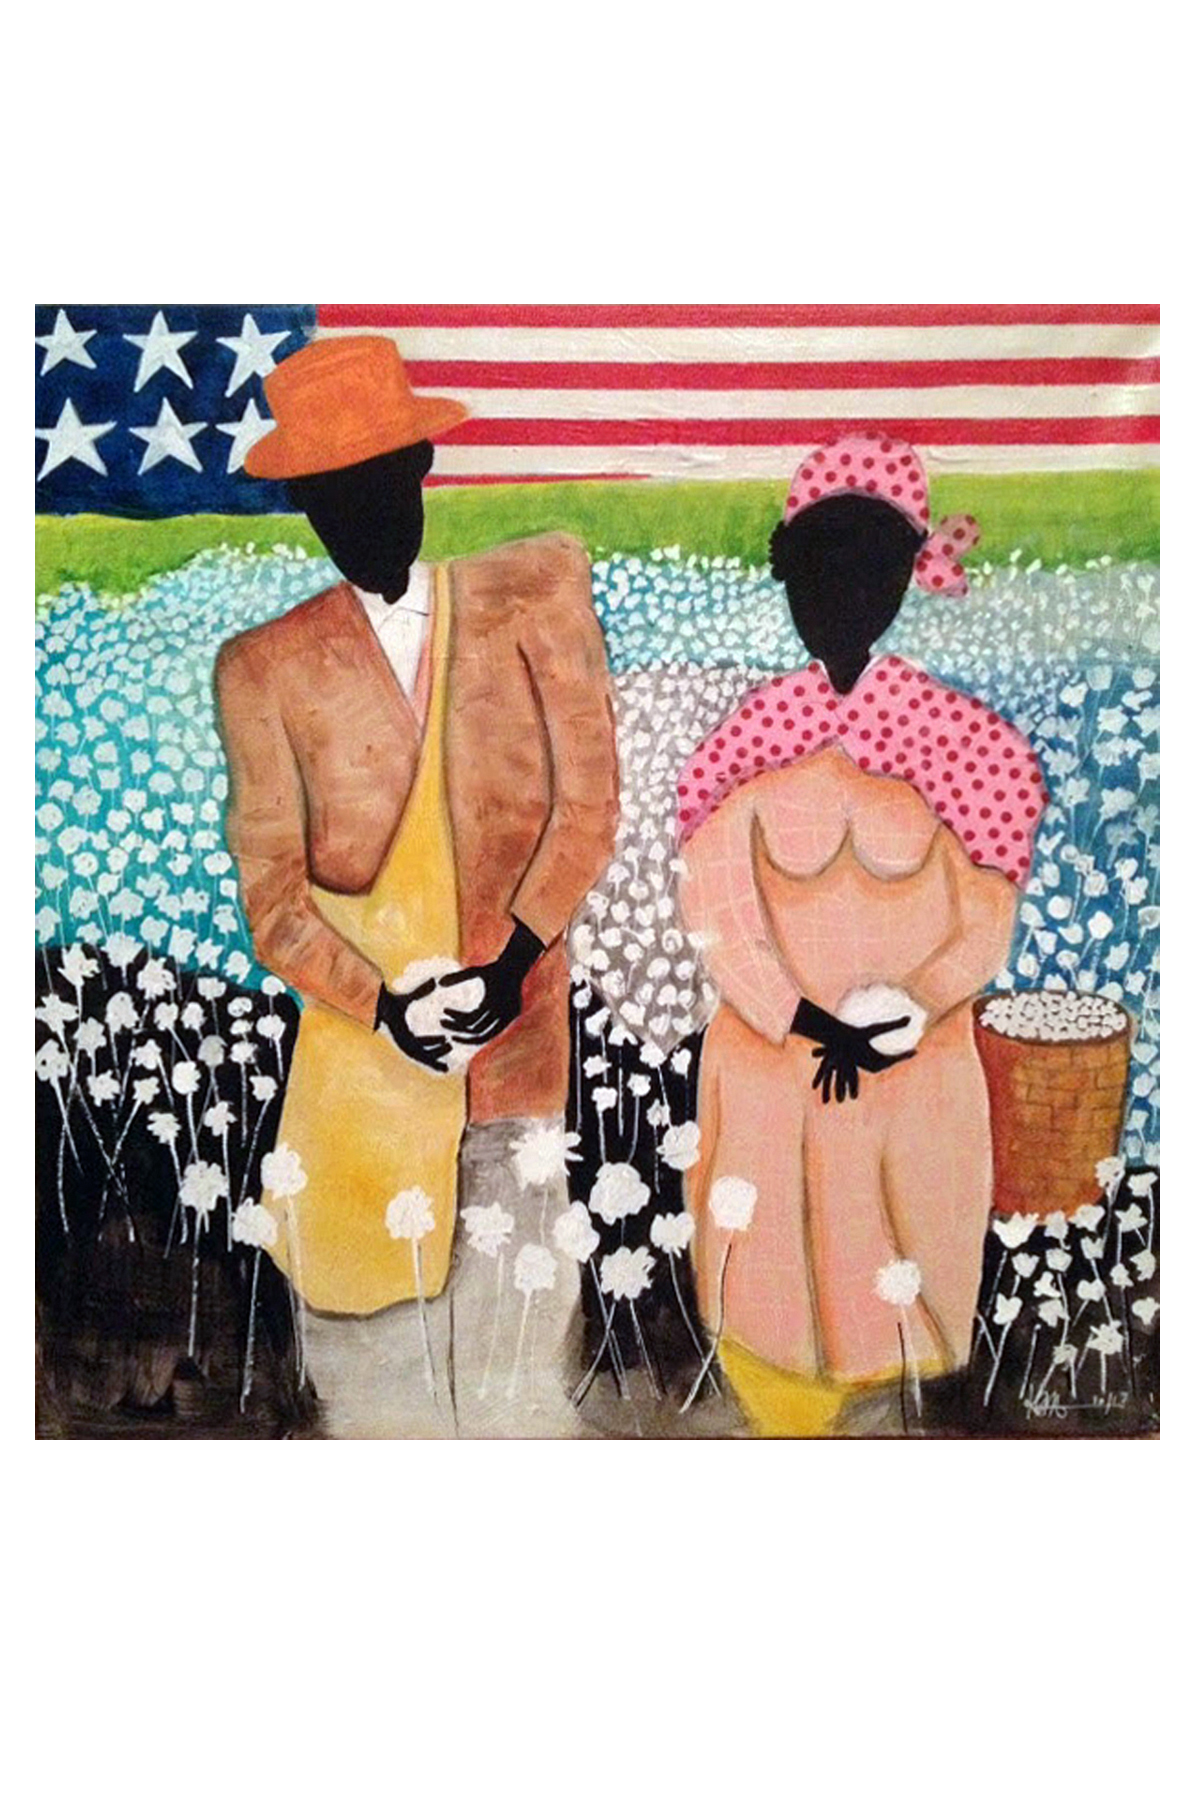 """Keith Mikell. Cotton Pickers, 2014, Acrylic, Oil & Collage, 20""""x20""""x1.5"""""""